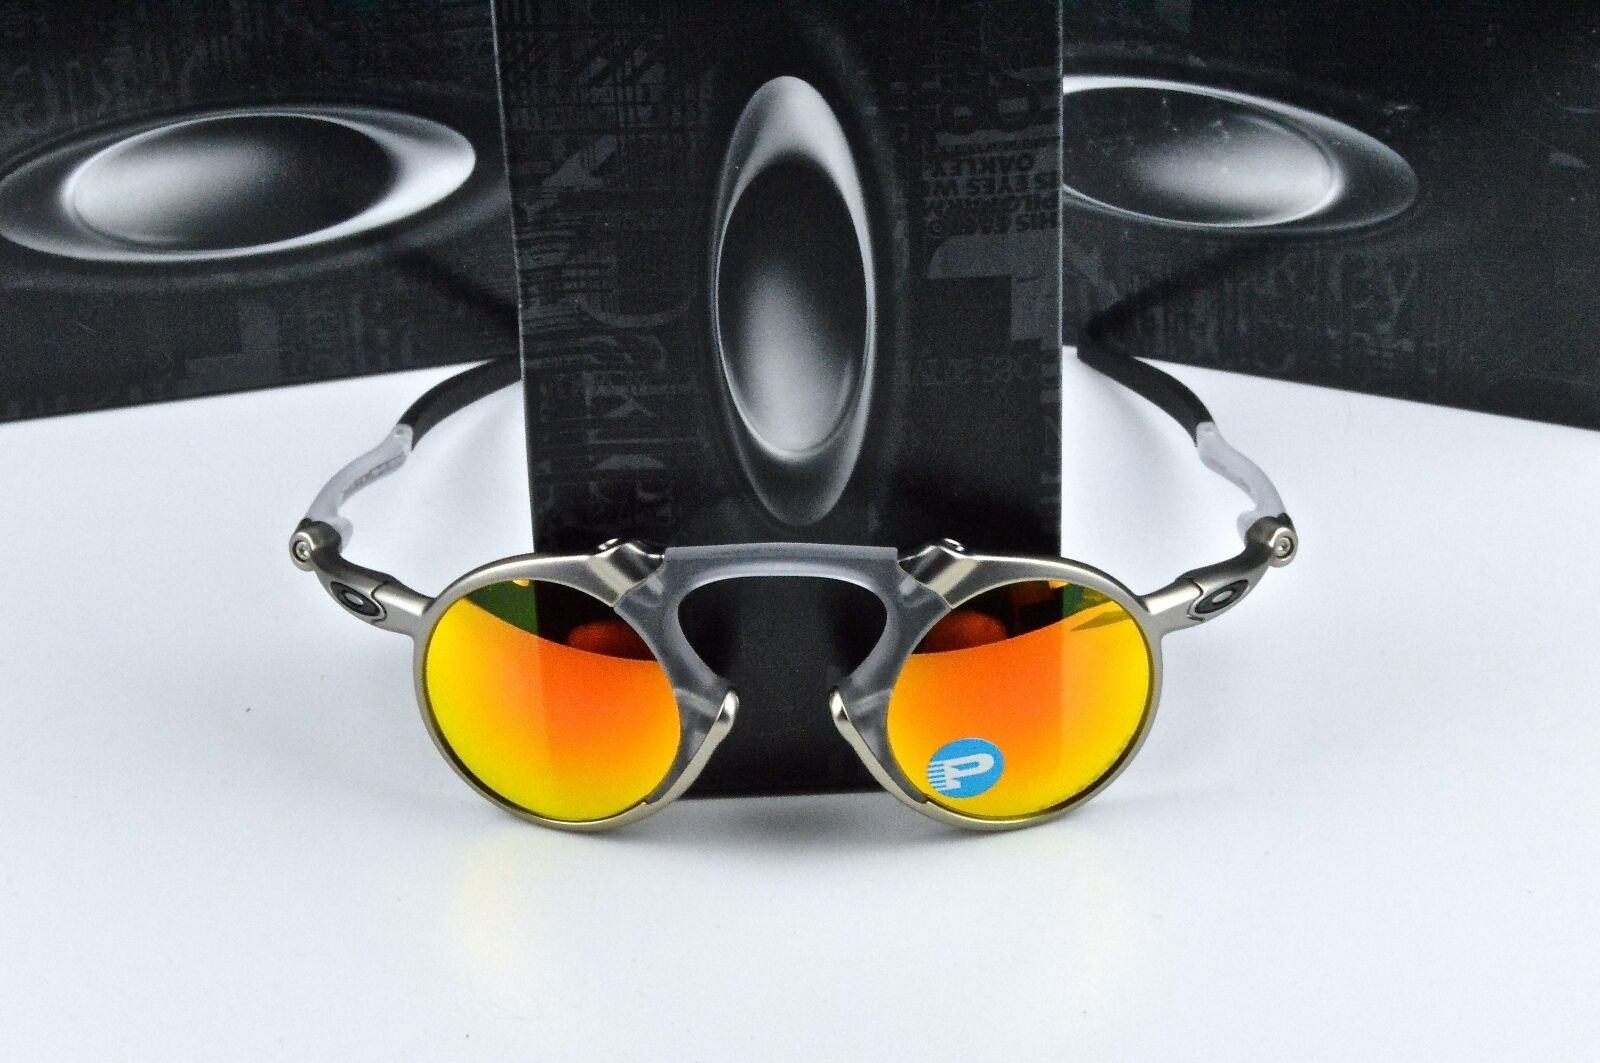 7d541c3170c UPC 888392097057 product image for Oakley Madman Round Sunglasses 0oo6019  601907 41 Pol